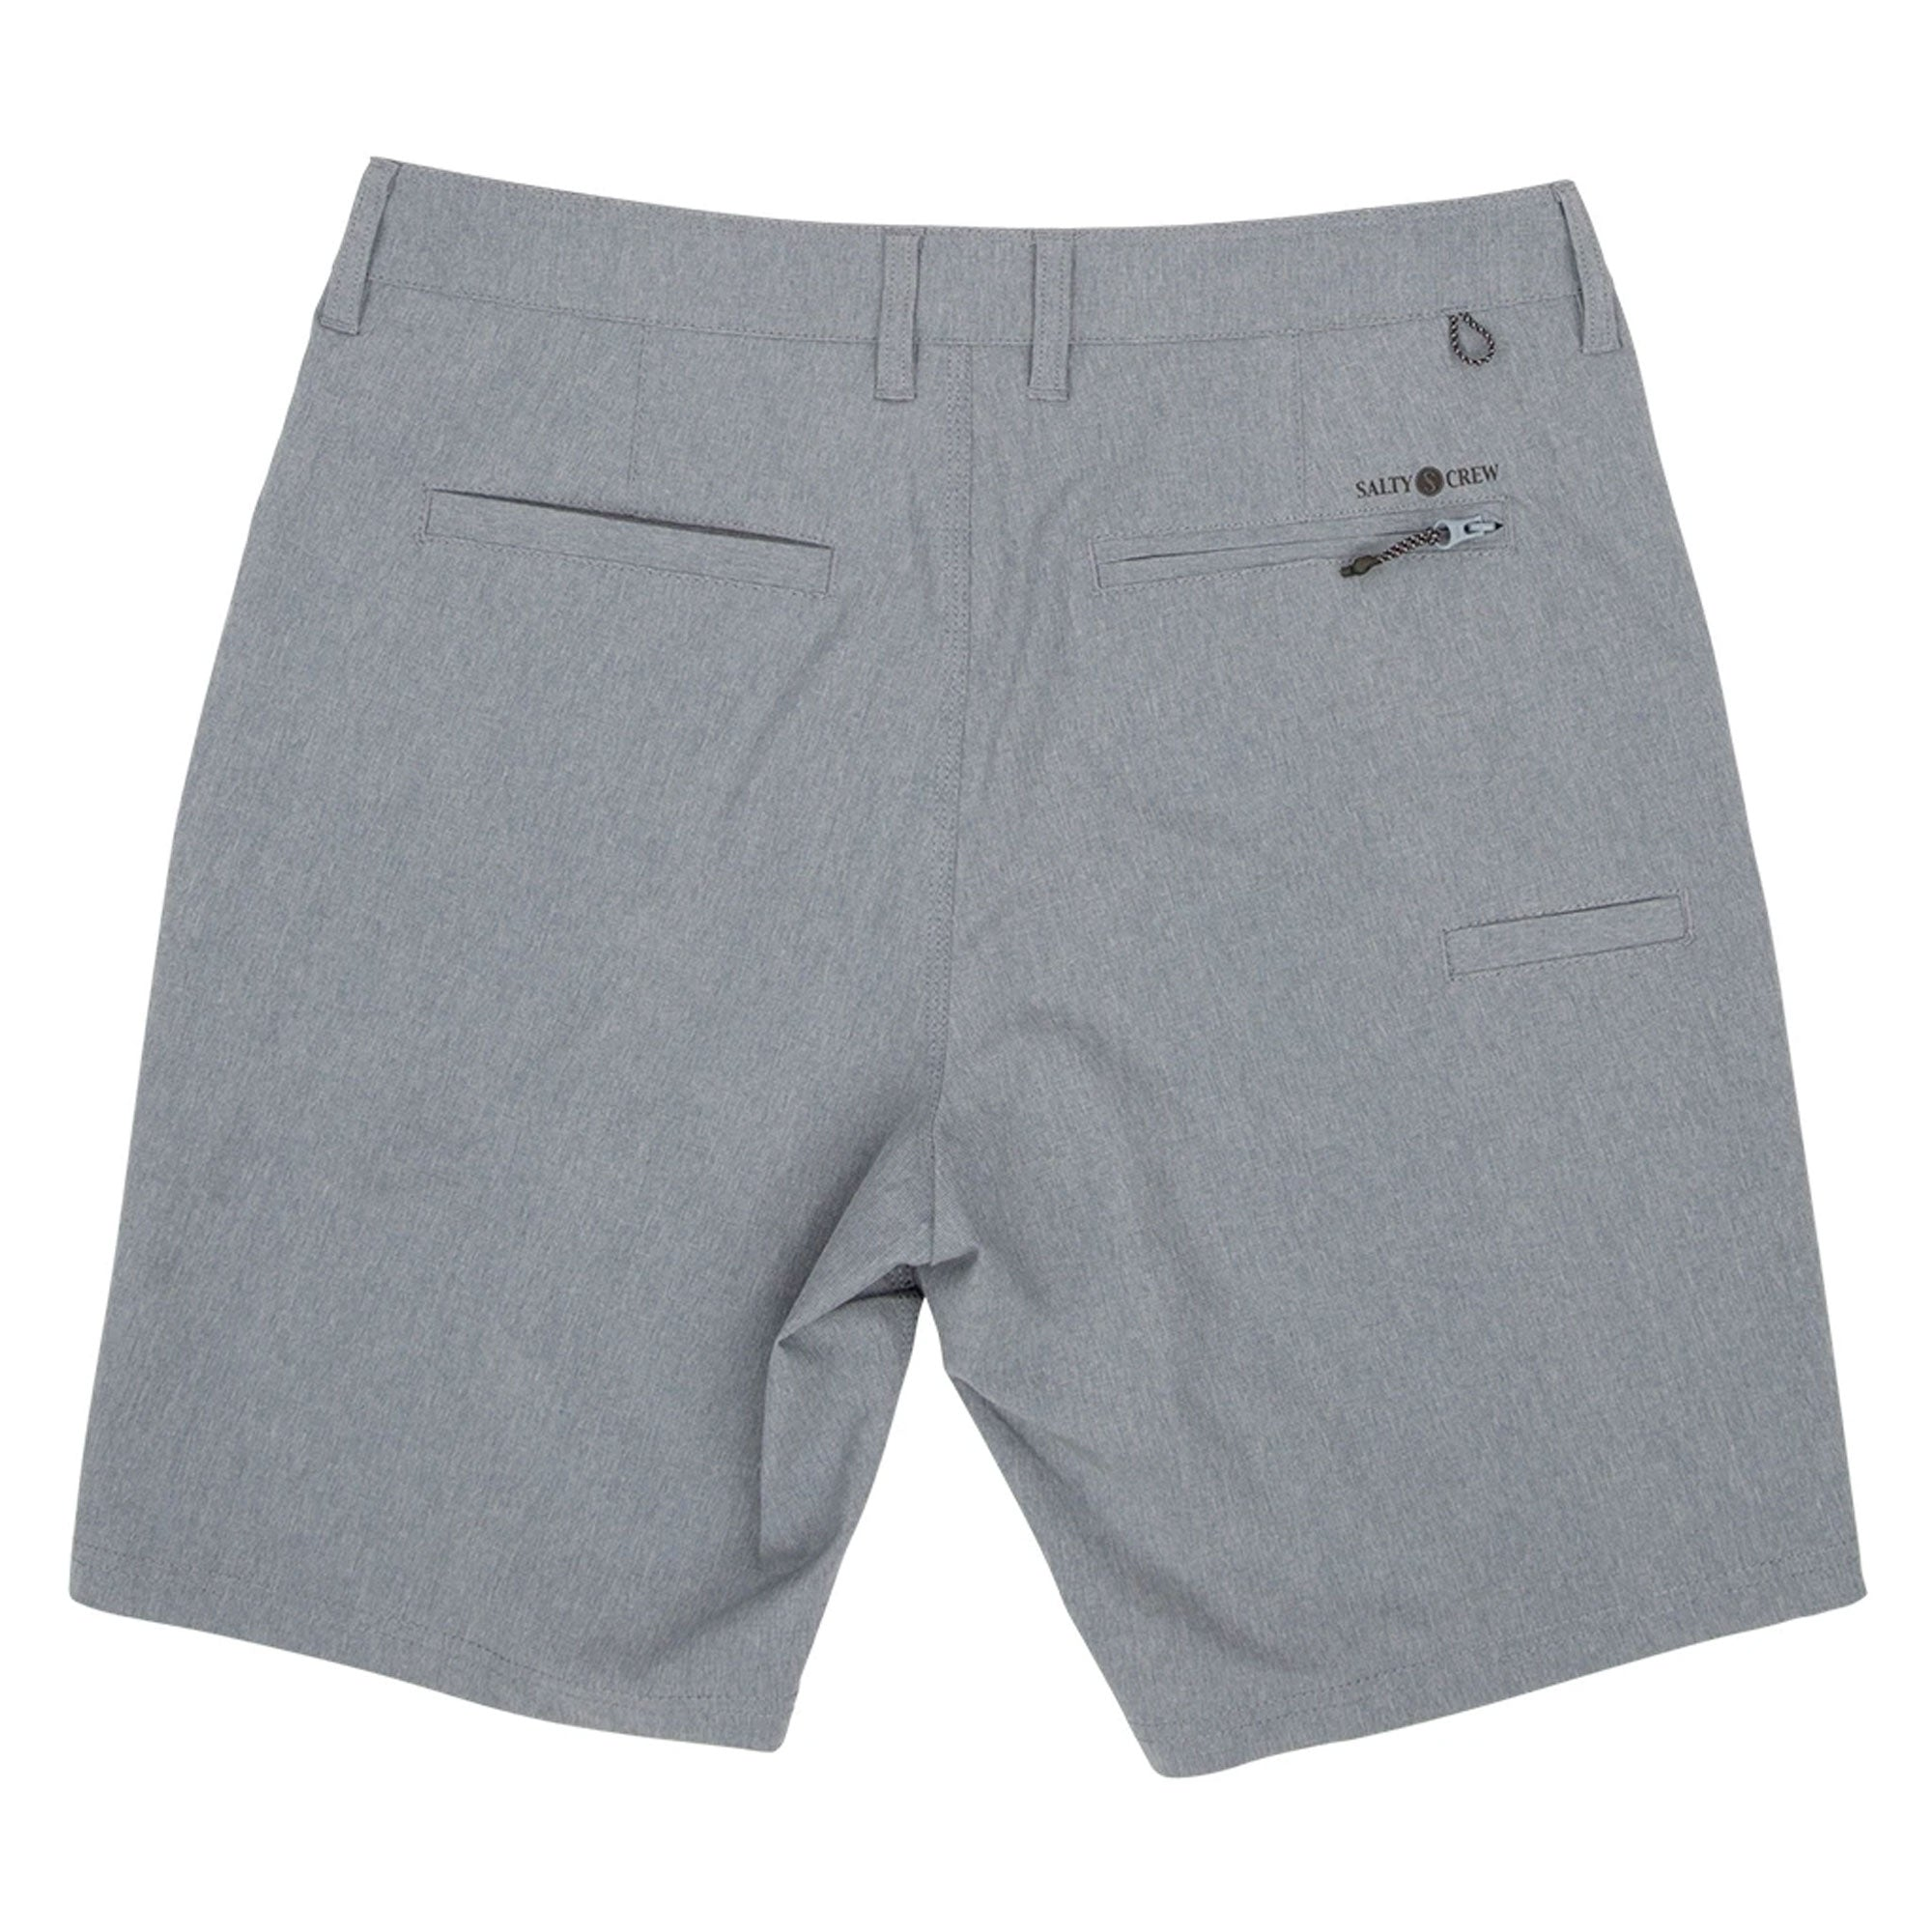 Salty Crew Drifter 2 Utility Men's Hybrid Walk Short